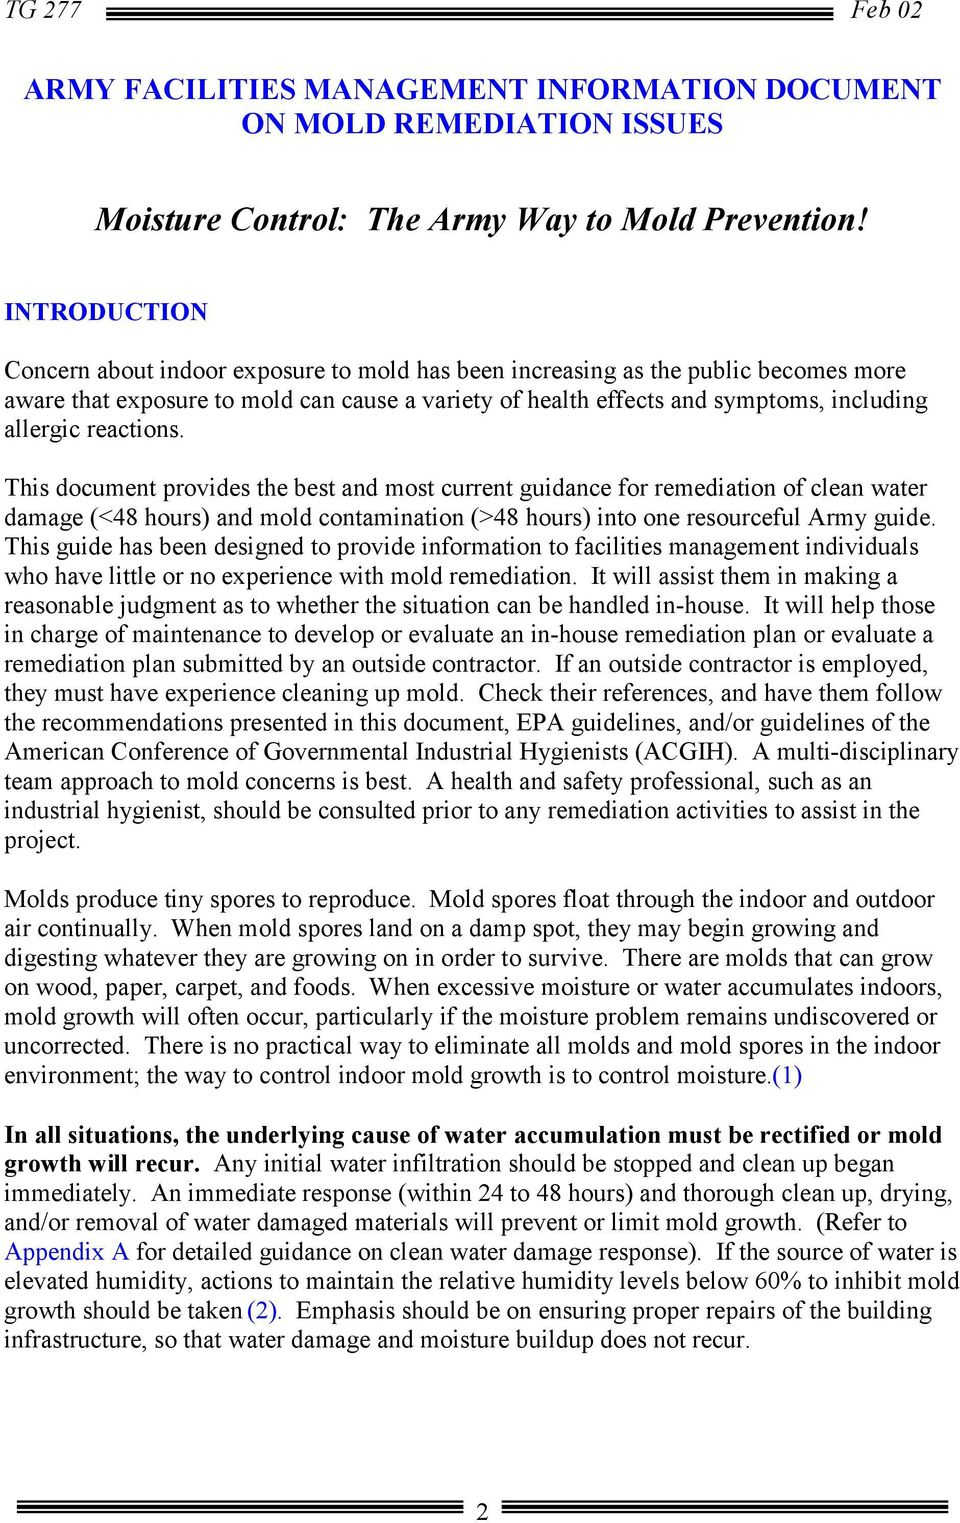 reactions. This document provides the best and most current guidance for remediation of clean water damage (<48 hours) and mold contamination (>48 hours) into one resourceful Army guide.